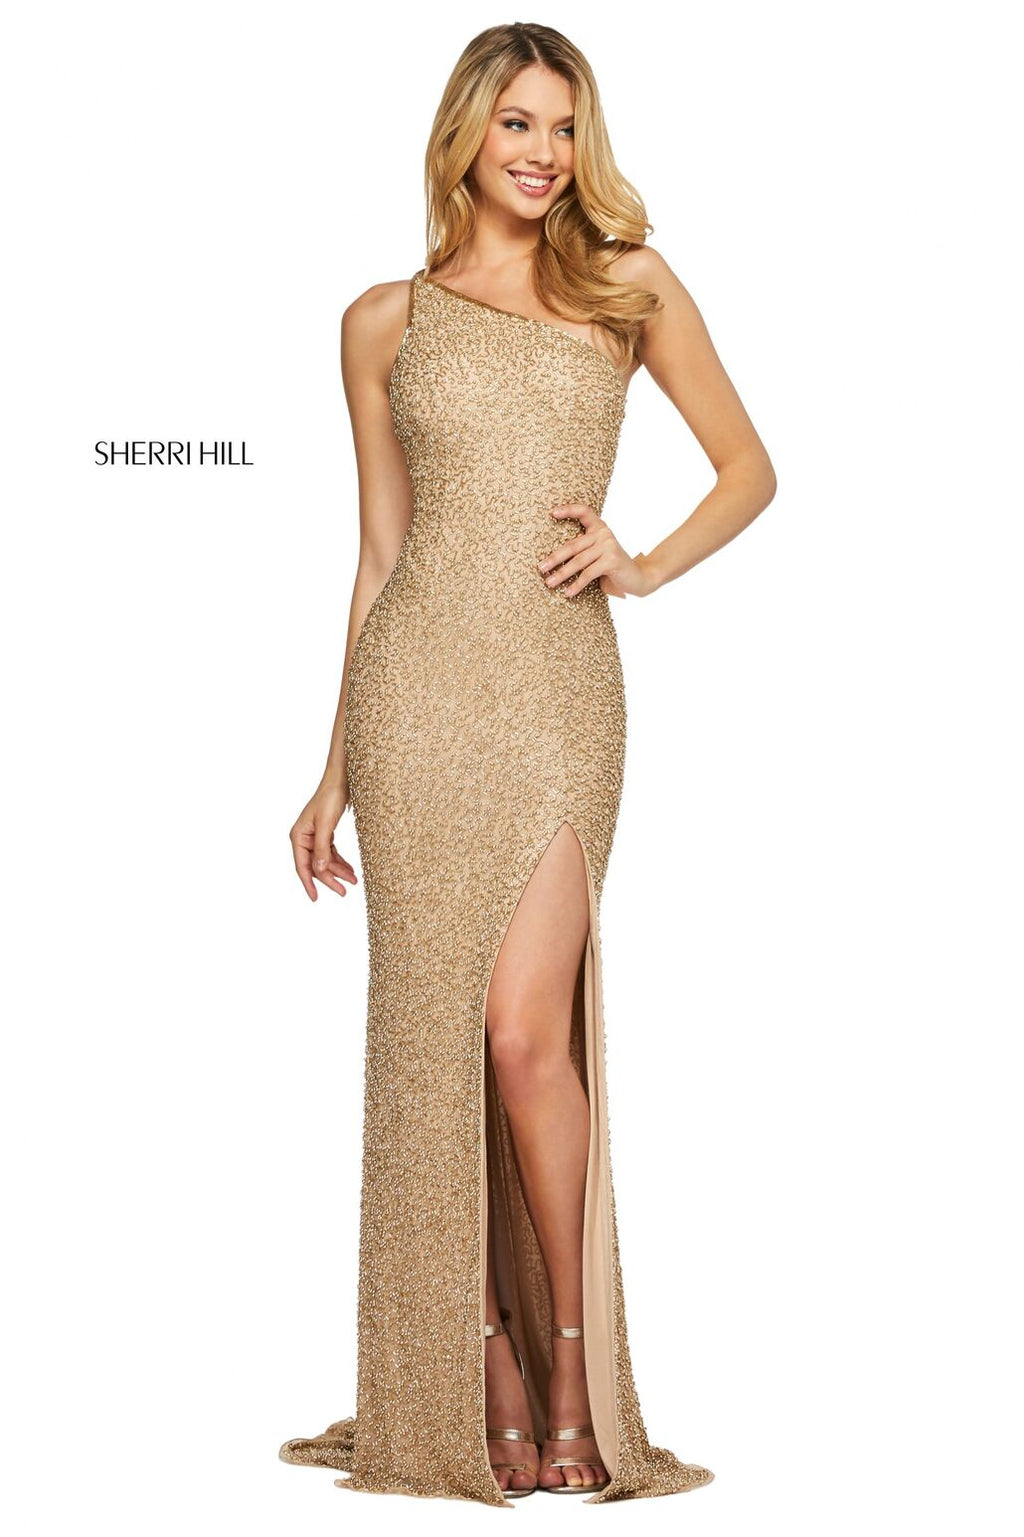 This Sherri Hill 53514 beaded column gown in gold features a one shoulder neckline and a skirt slit.